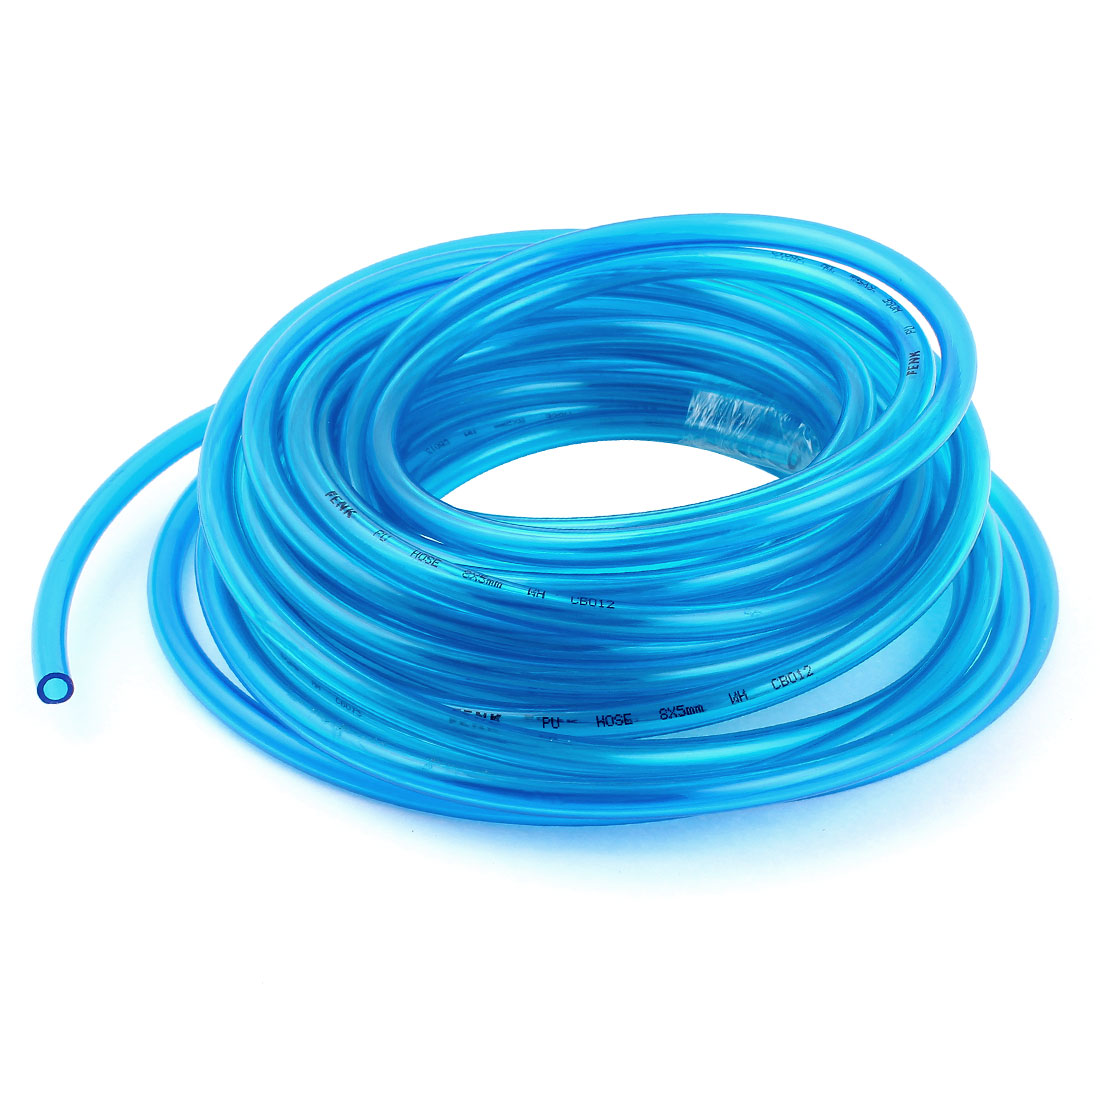 5m 16.4ft 8mmx5mm Pneumatic Polyurethane PU Hose Tube Pipe Clear Blue